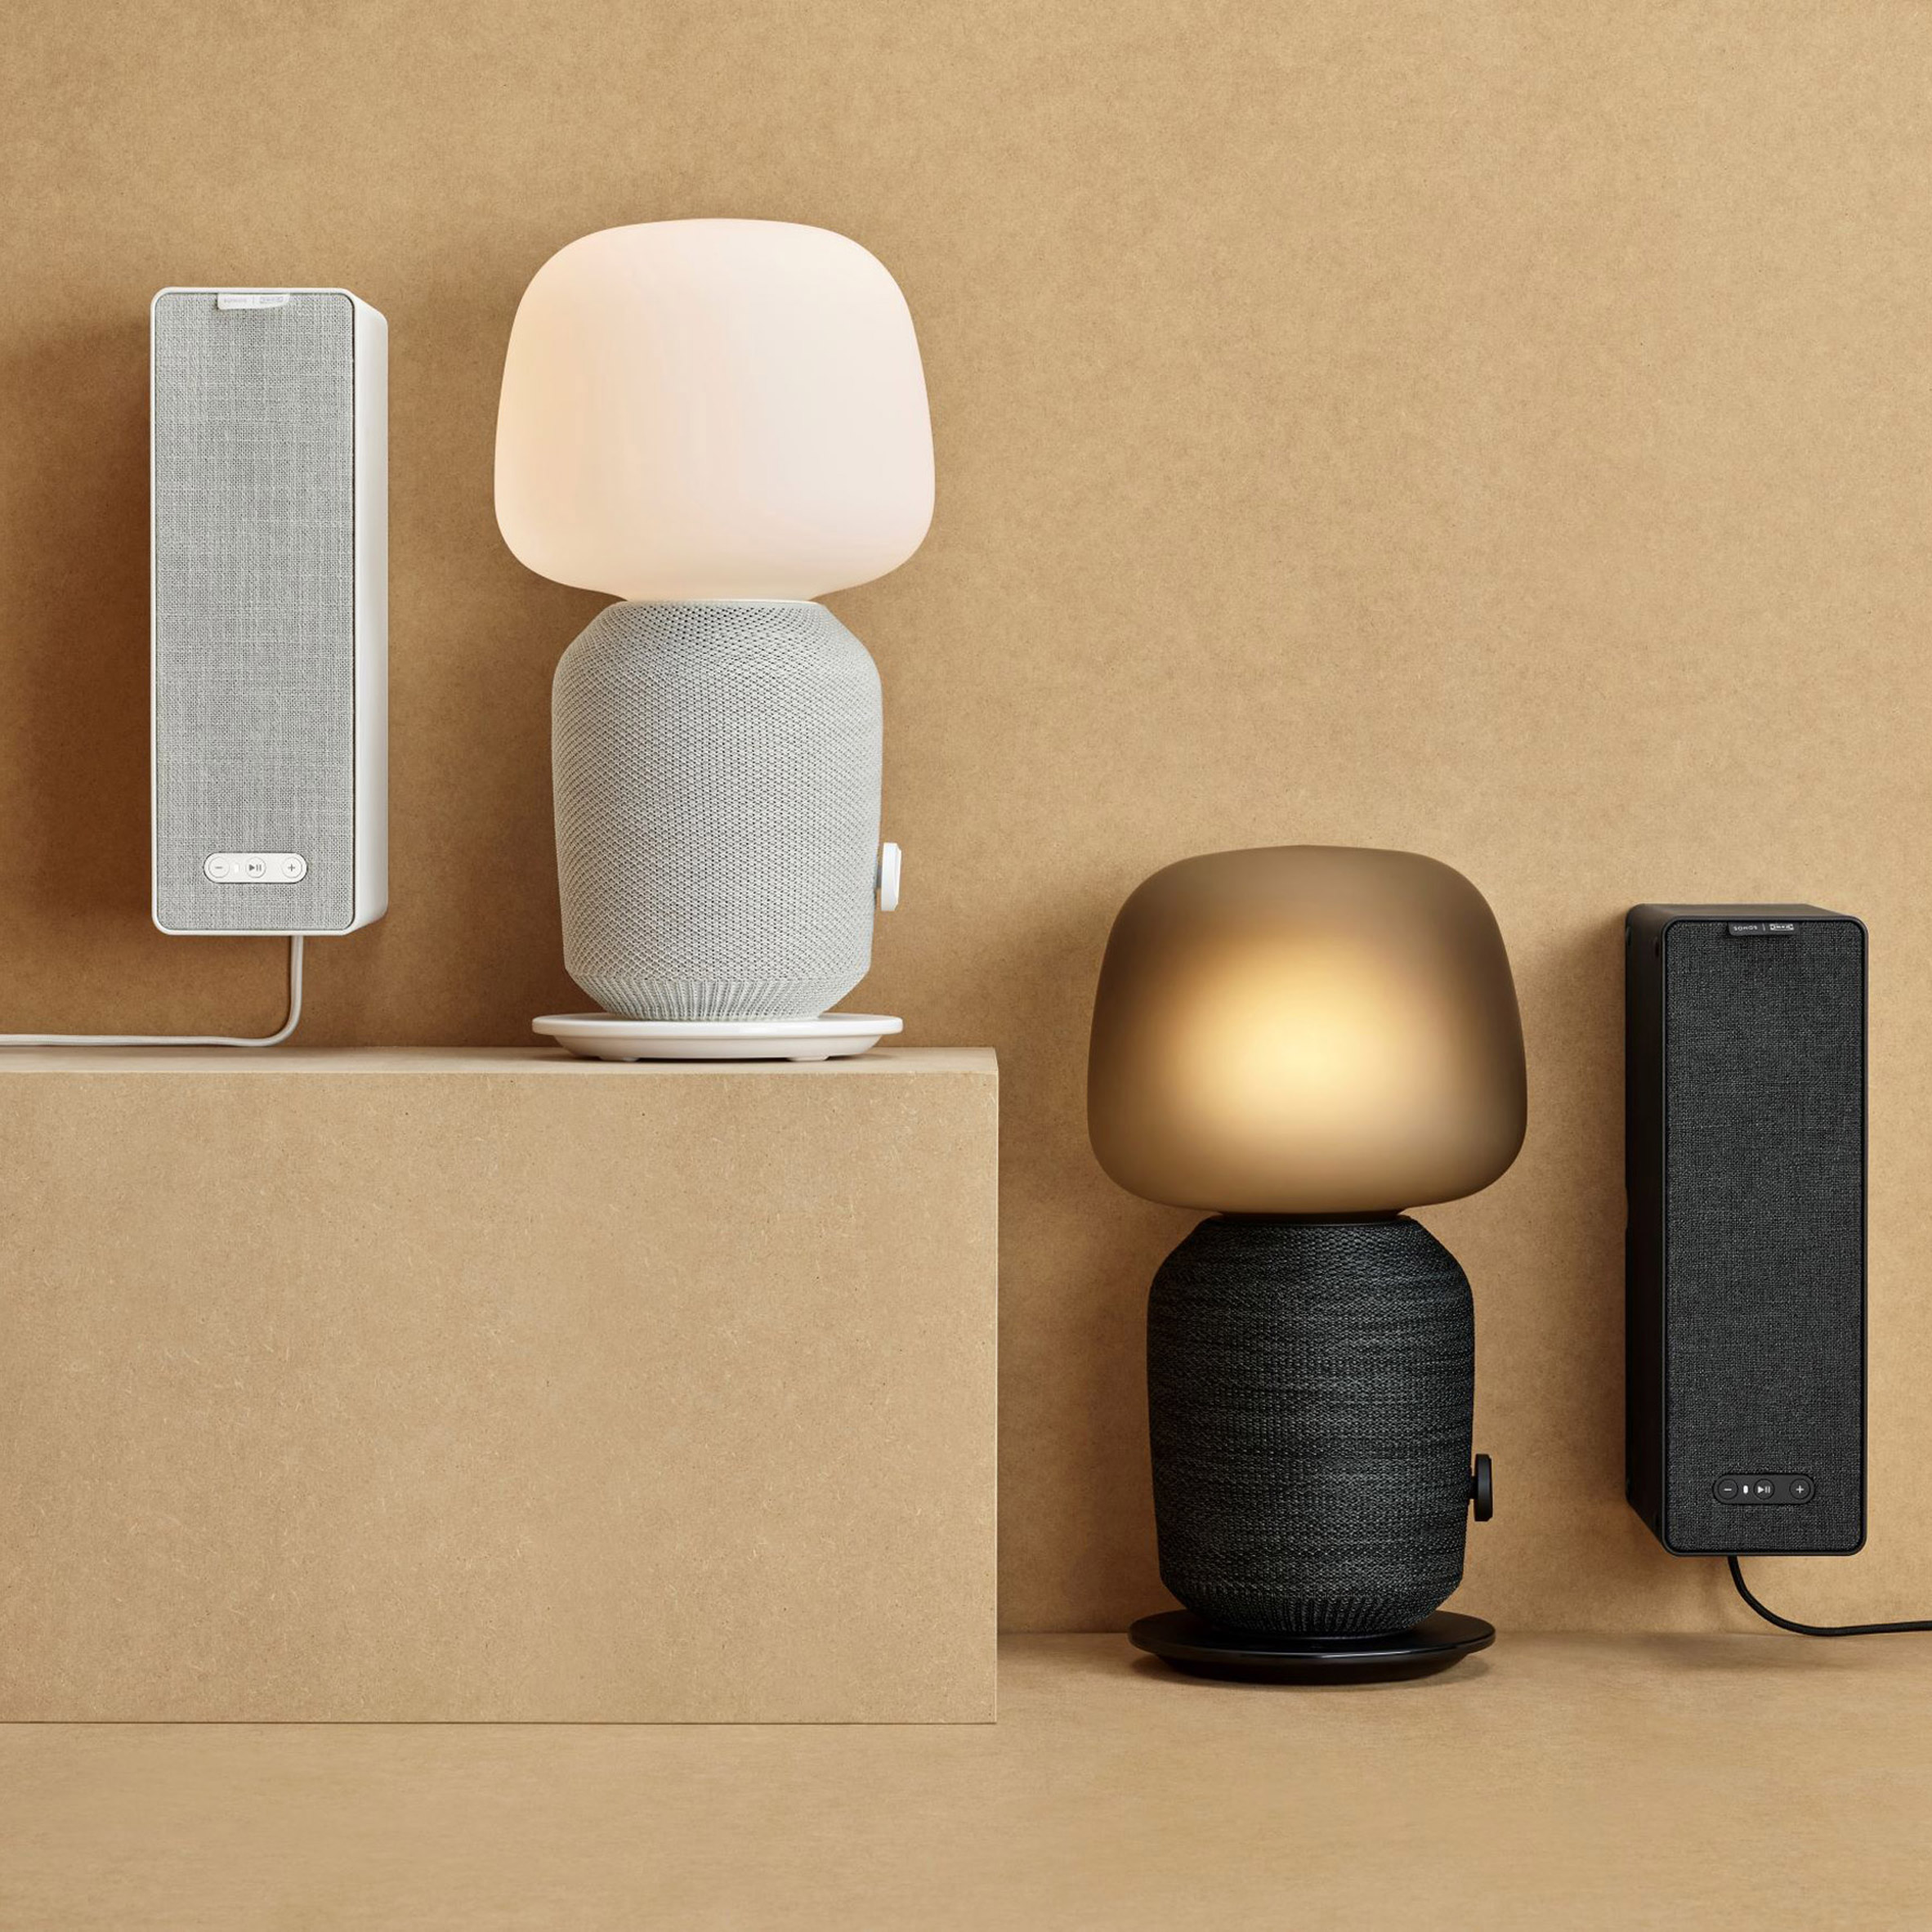 Ikea And Sonos Unveil Symfonisk Lamp And Shelf Speakers